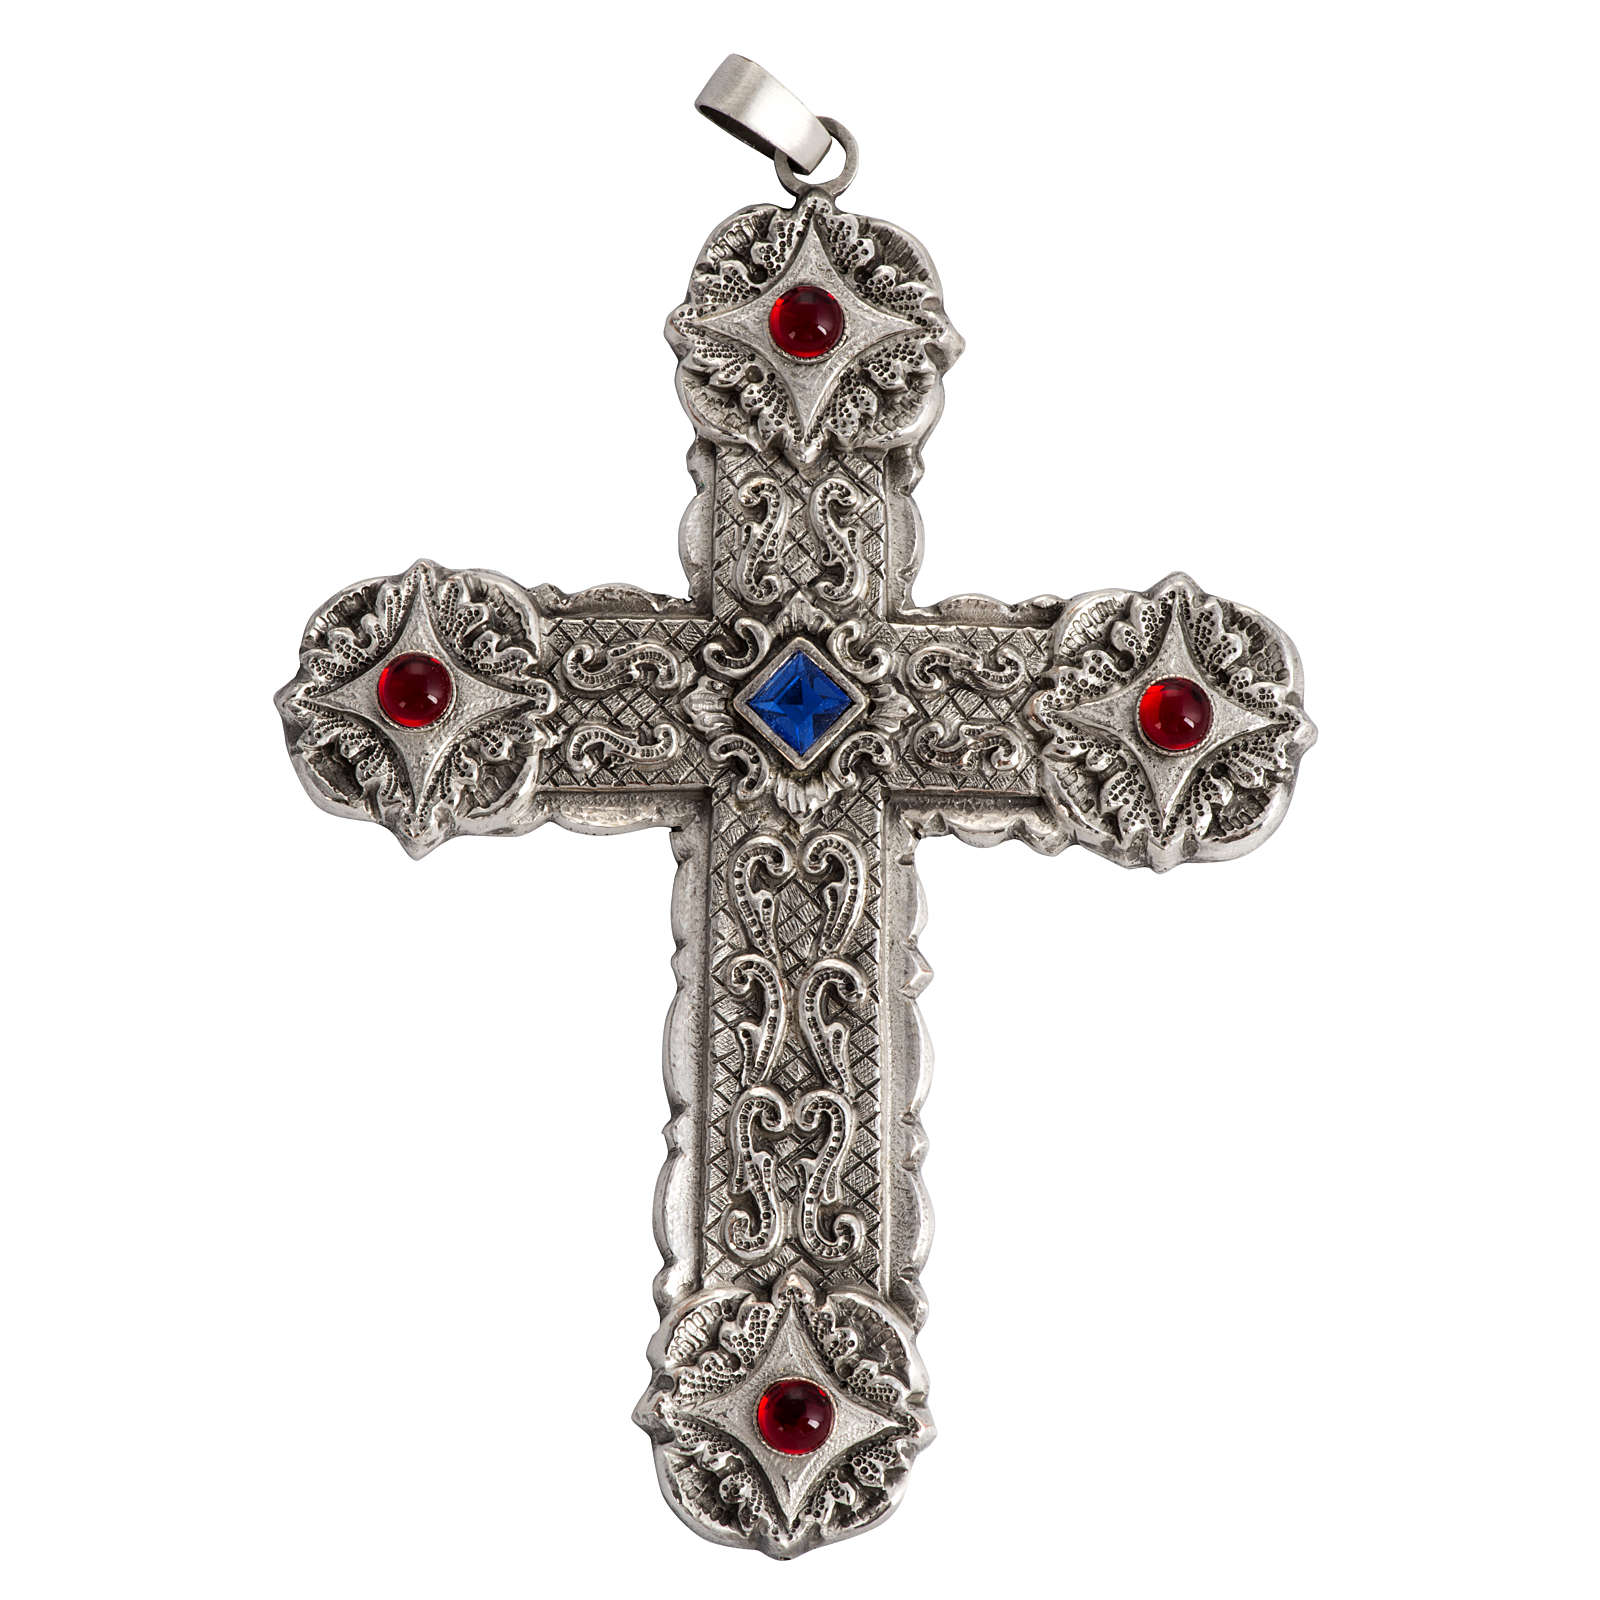 Pectoral cross in sterling silver, 18Kt gold, rubies 3